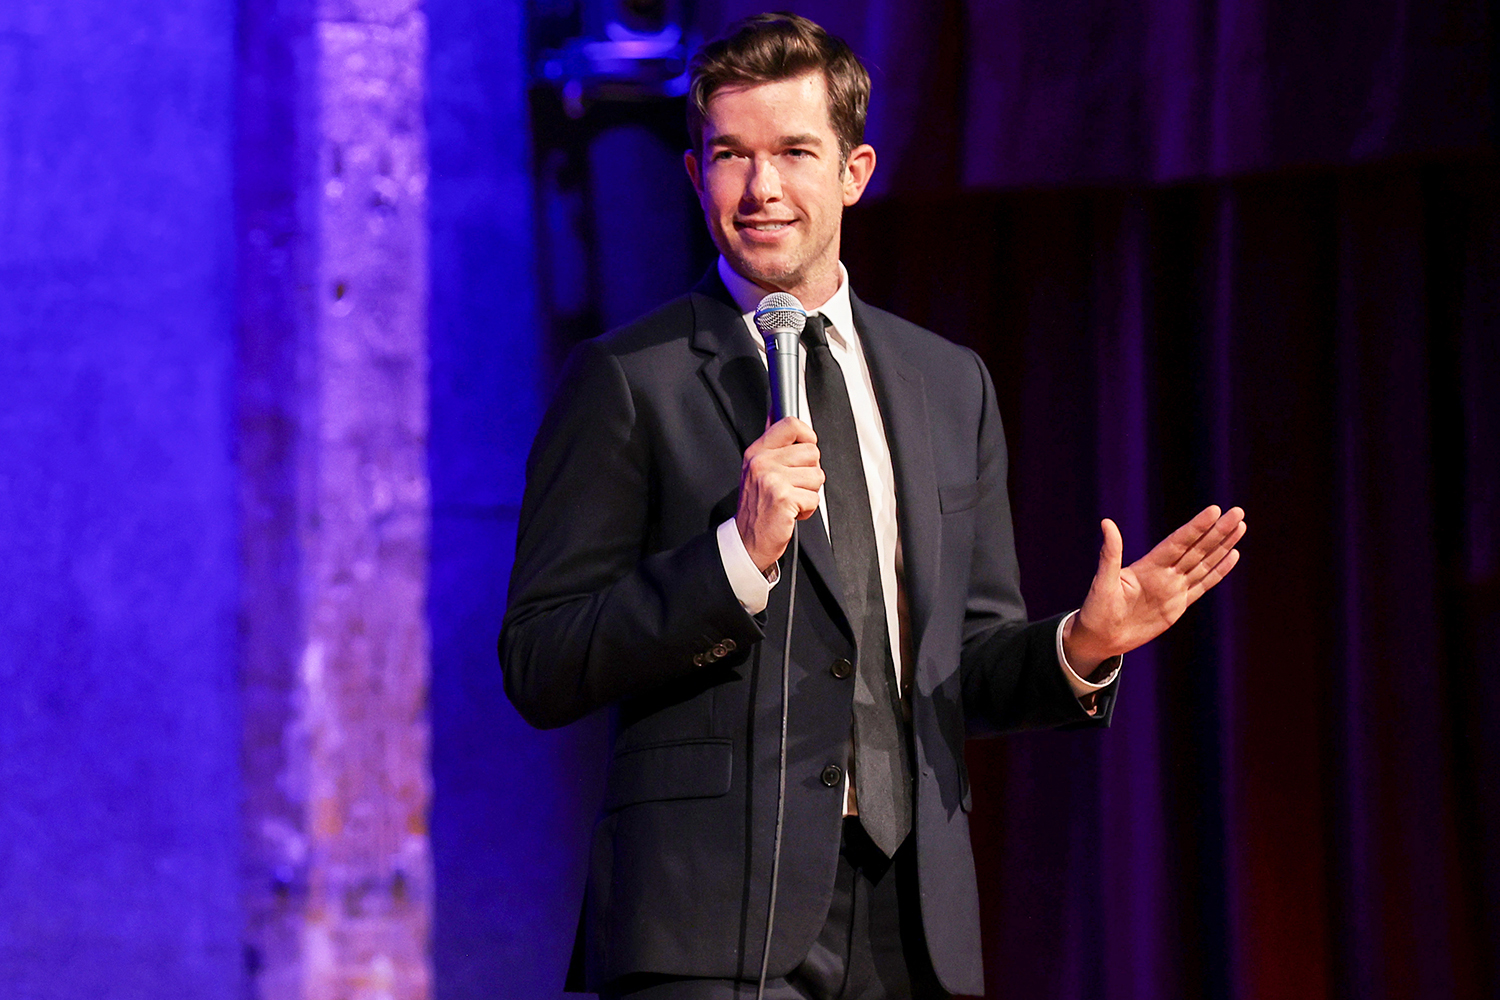 """Comedian John Mulaney Performs Standup From His """"From Scratch"""" Tour At New York's City Winery As Part Of SiriusXM's Small Stage Series at City Winery on September 01, 2021 in New York City."""